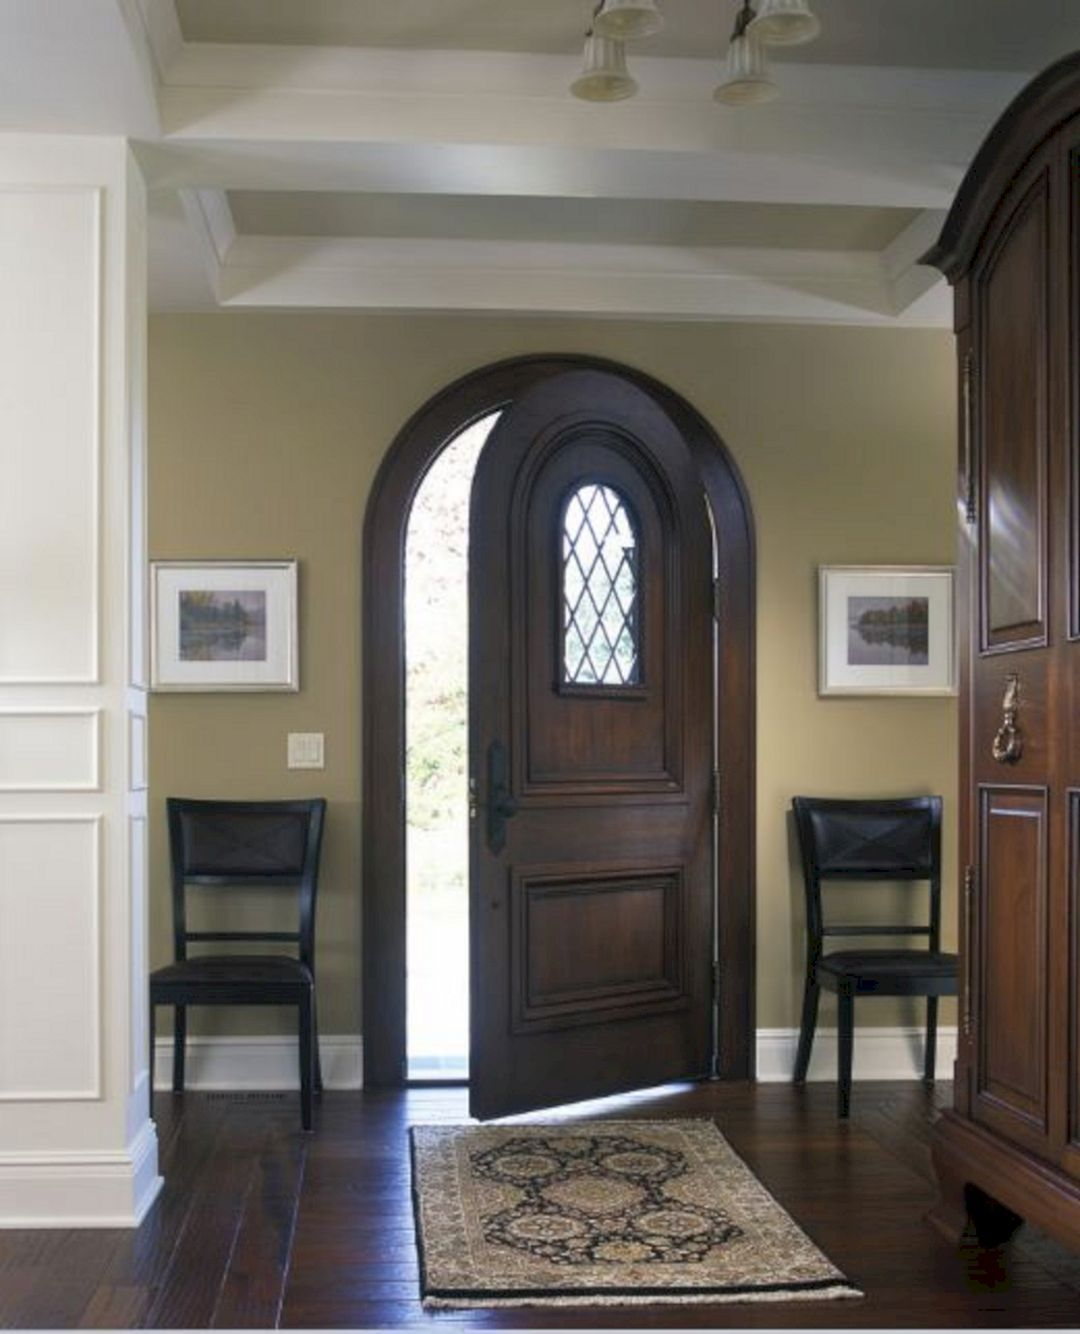 40 Marvelous White Trim With Stained Door Ideas Freshouz Com White Baseboards Stained Doors Stained Trim